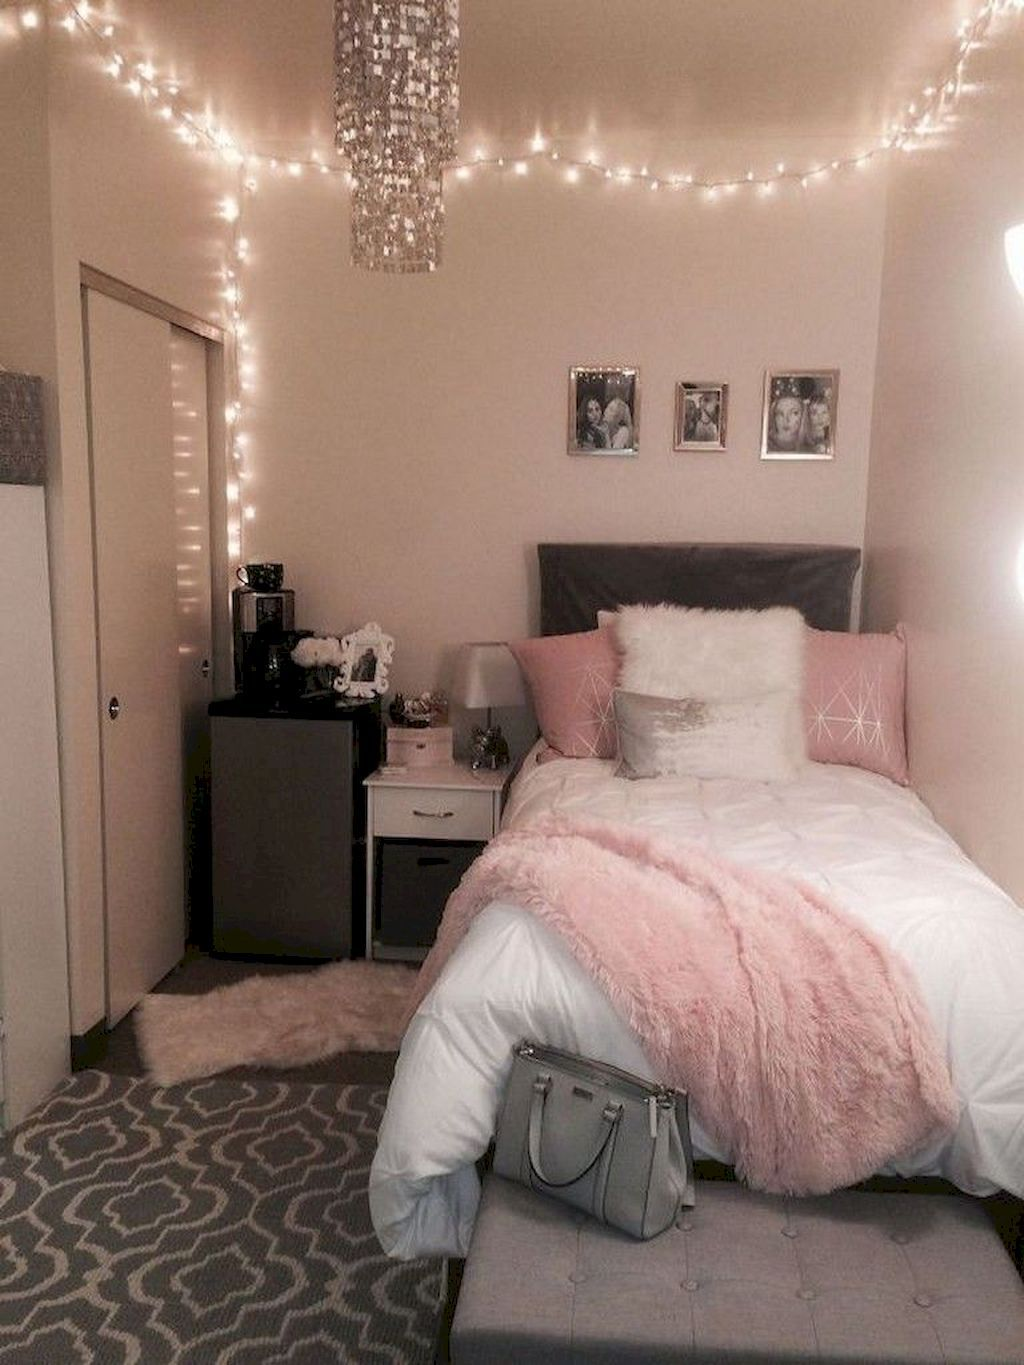 Cool 75 Cute Dorm Room Decorating Ideas On A Budget Https Frontbackhome Com 2844 75 Cute Dorm Room Decorat Simple Bedroom Apartment Room Small Girls Bedrooms